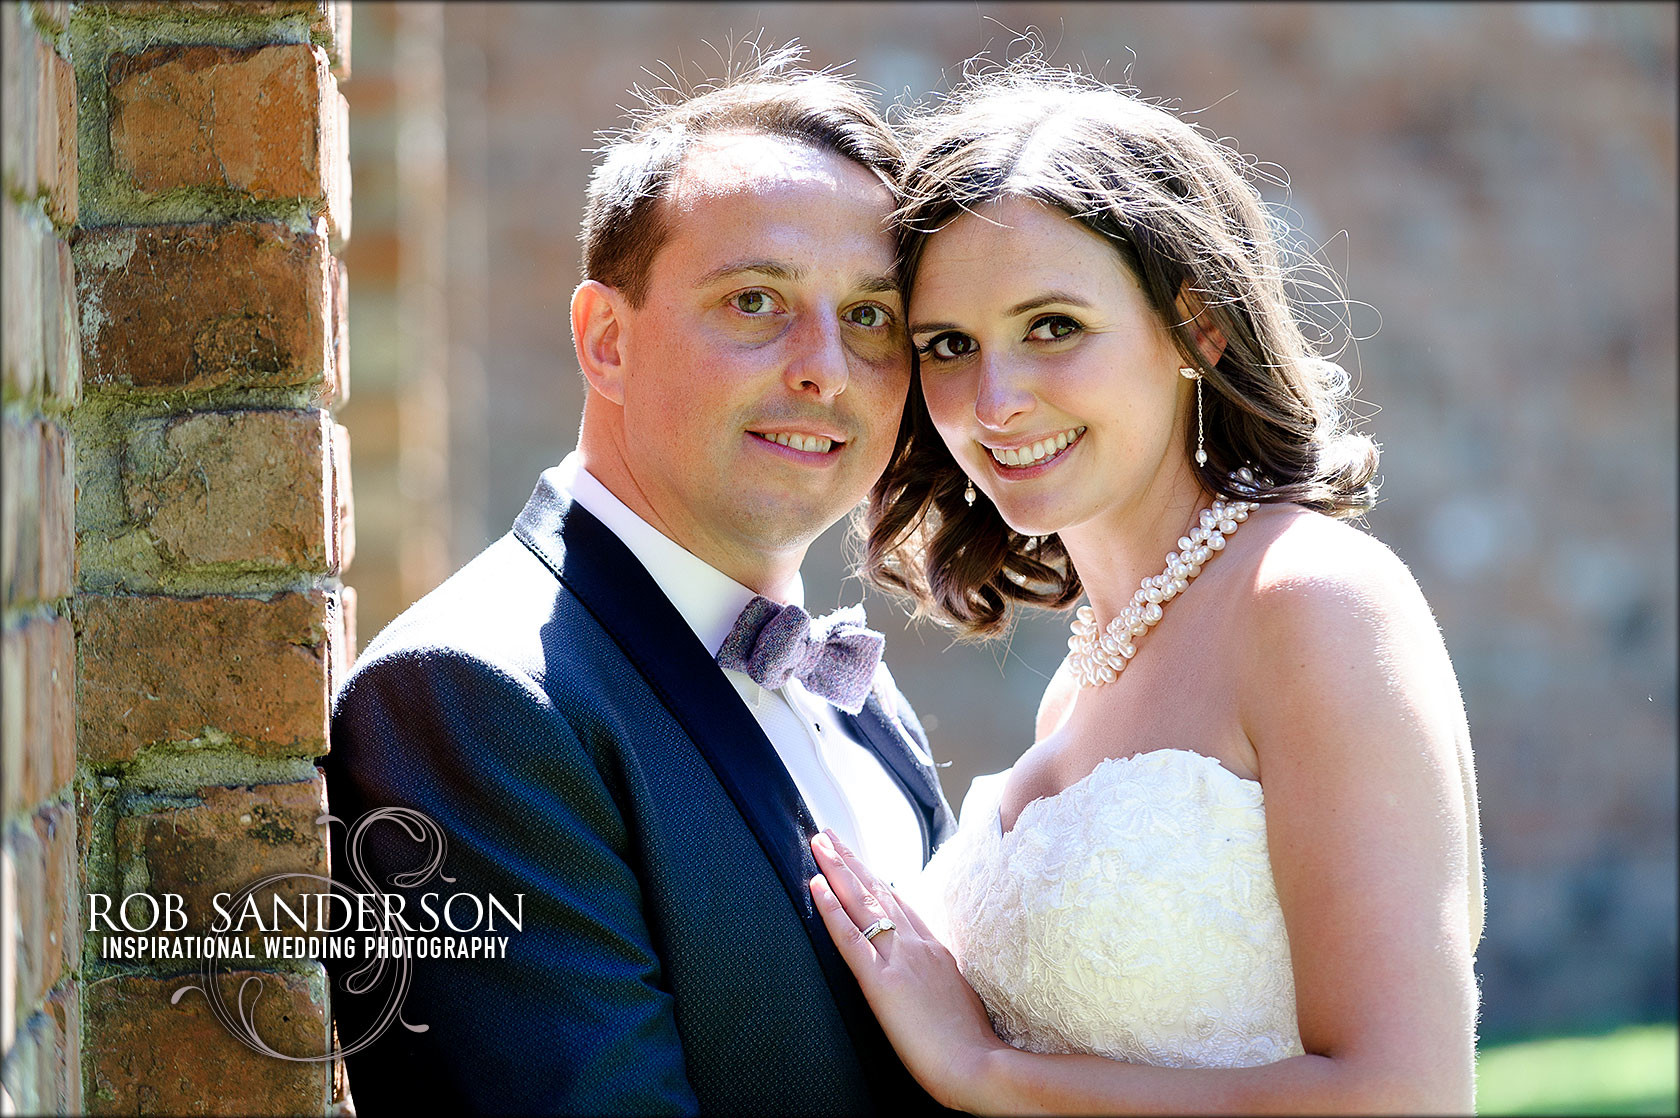 beautiful wedding picture at Meols hall